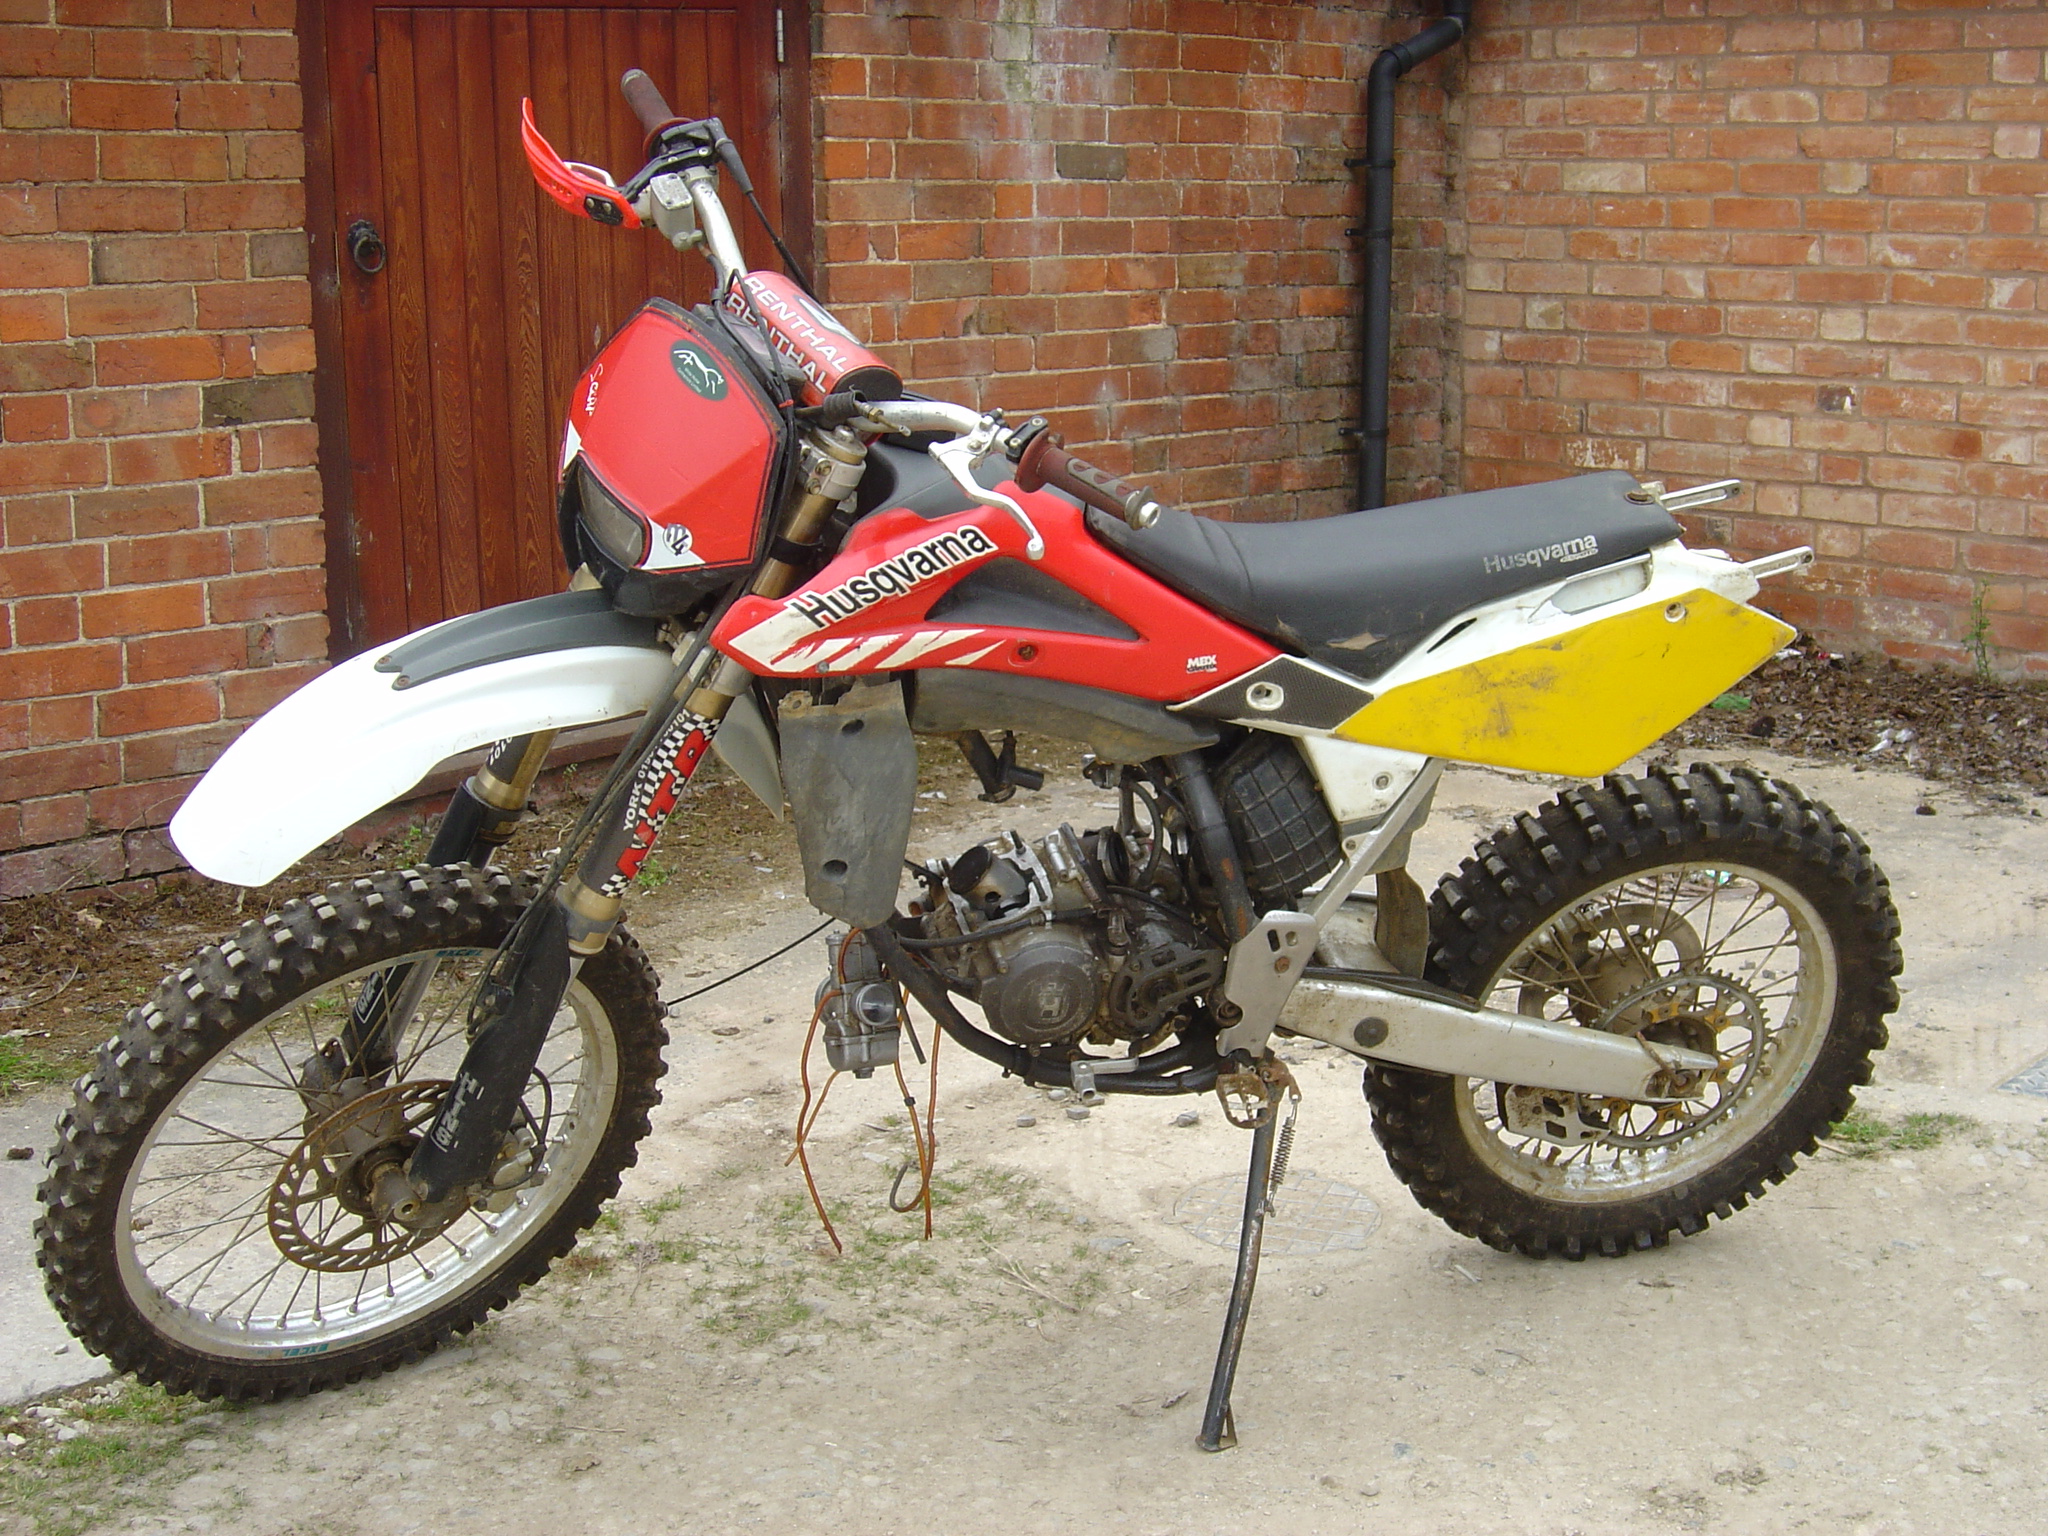 Husqvarna 125 breaking for spare parts for Colorado motorized bicycle laws